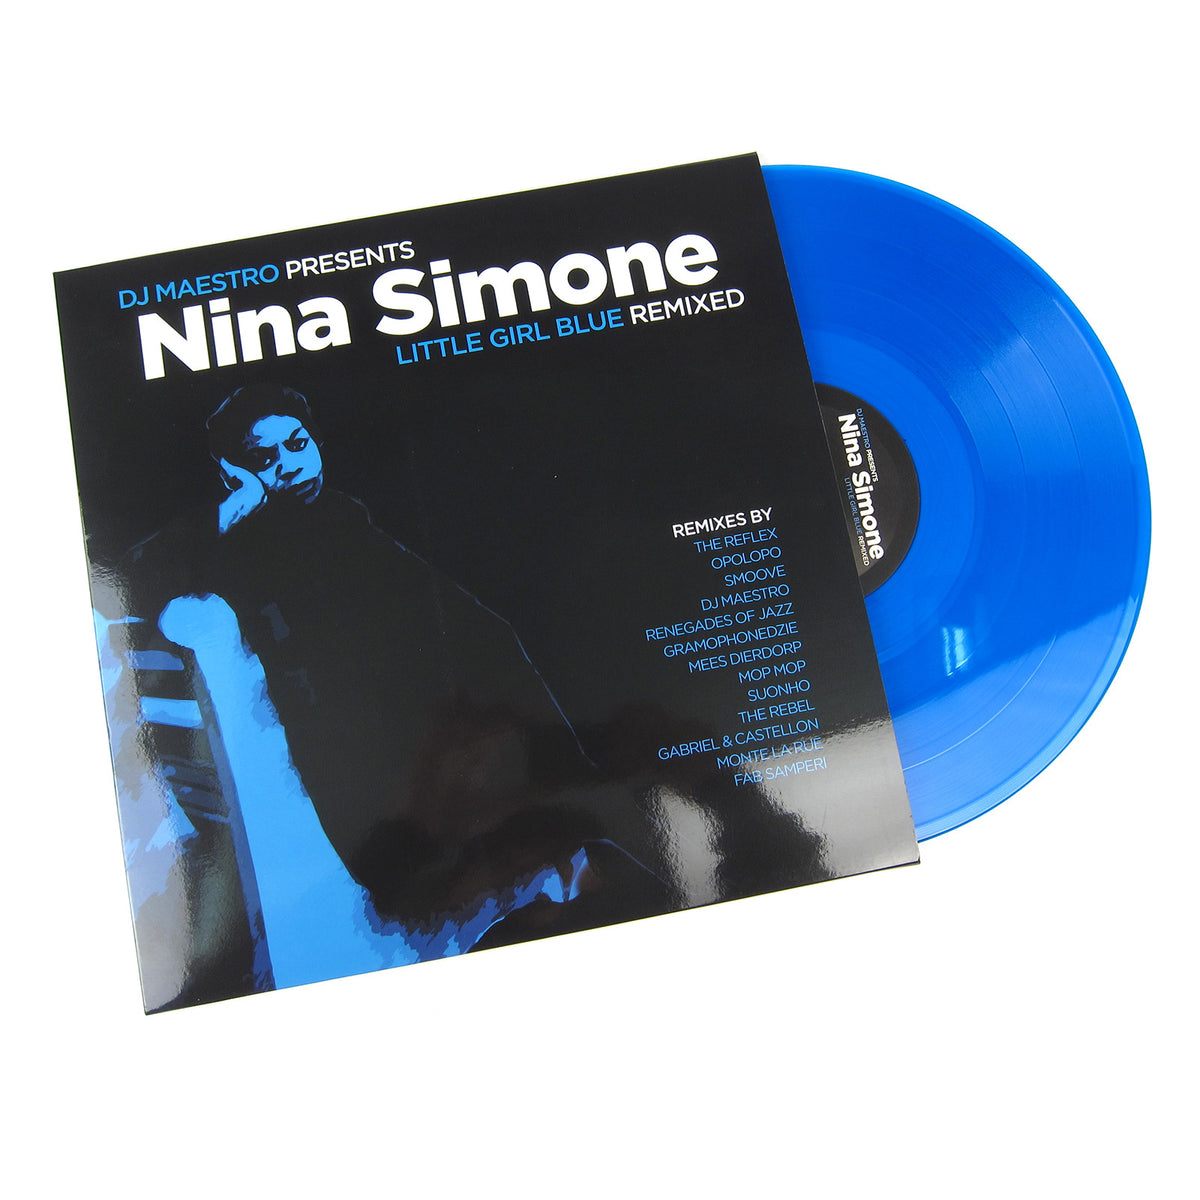 Nina Simone: DJ Maestro Presents Little Blue Girl Remixed (Colored Vinyl, 180g) Vinyl LP